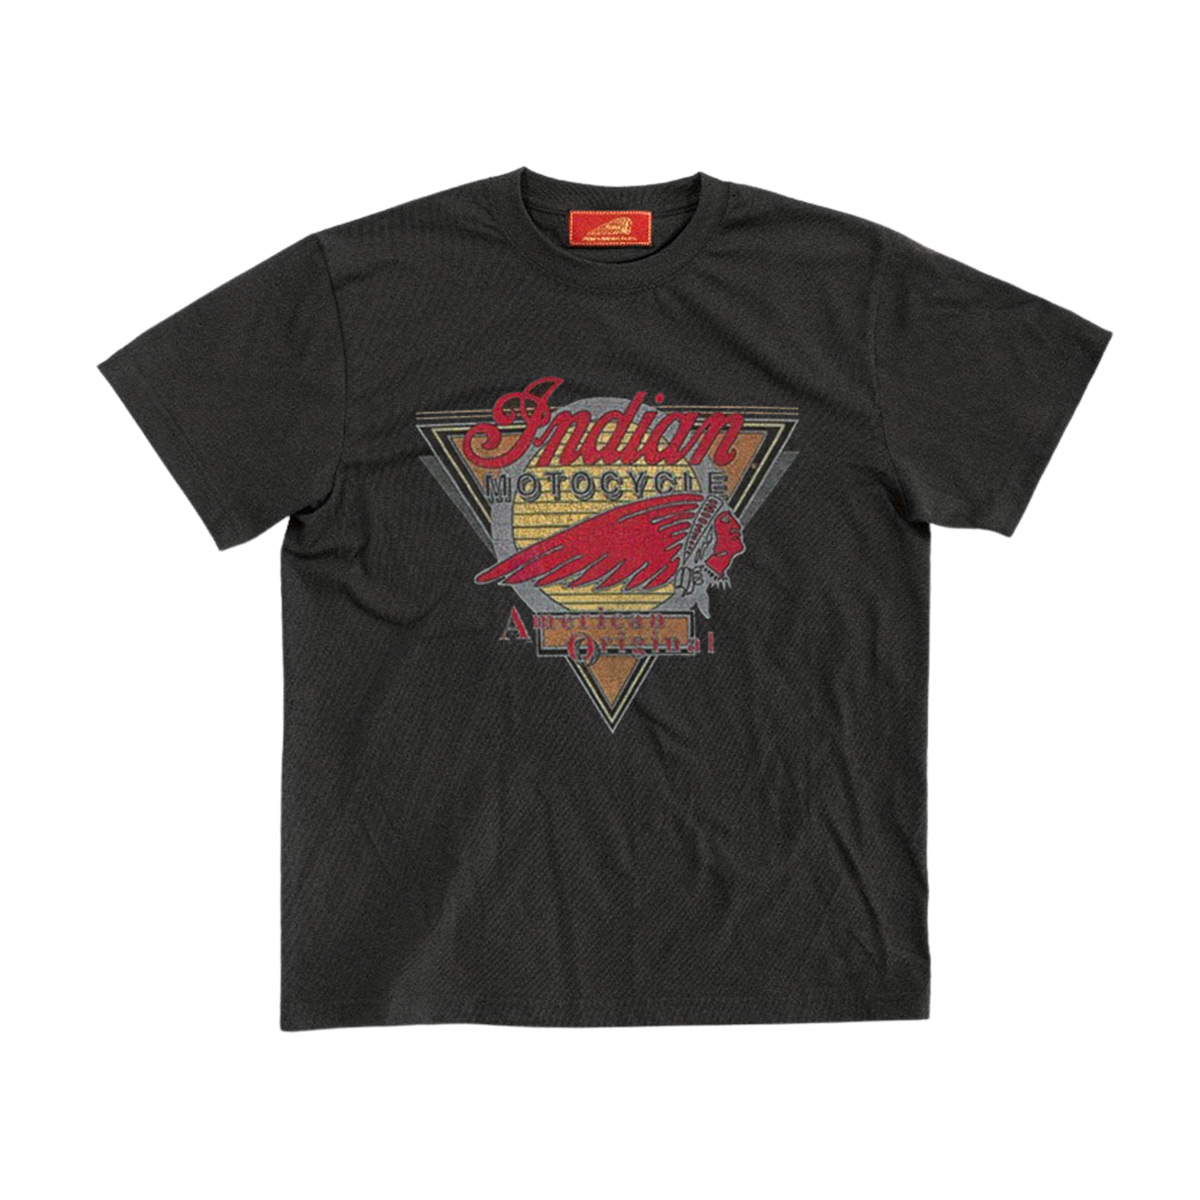 Indian インディアン The Indian is Back Tee American Original